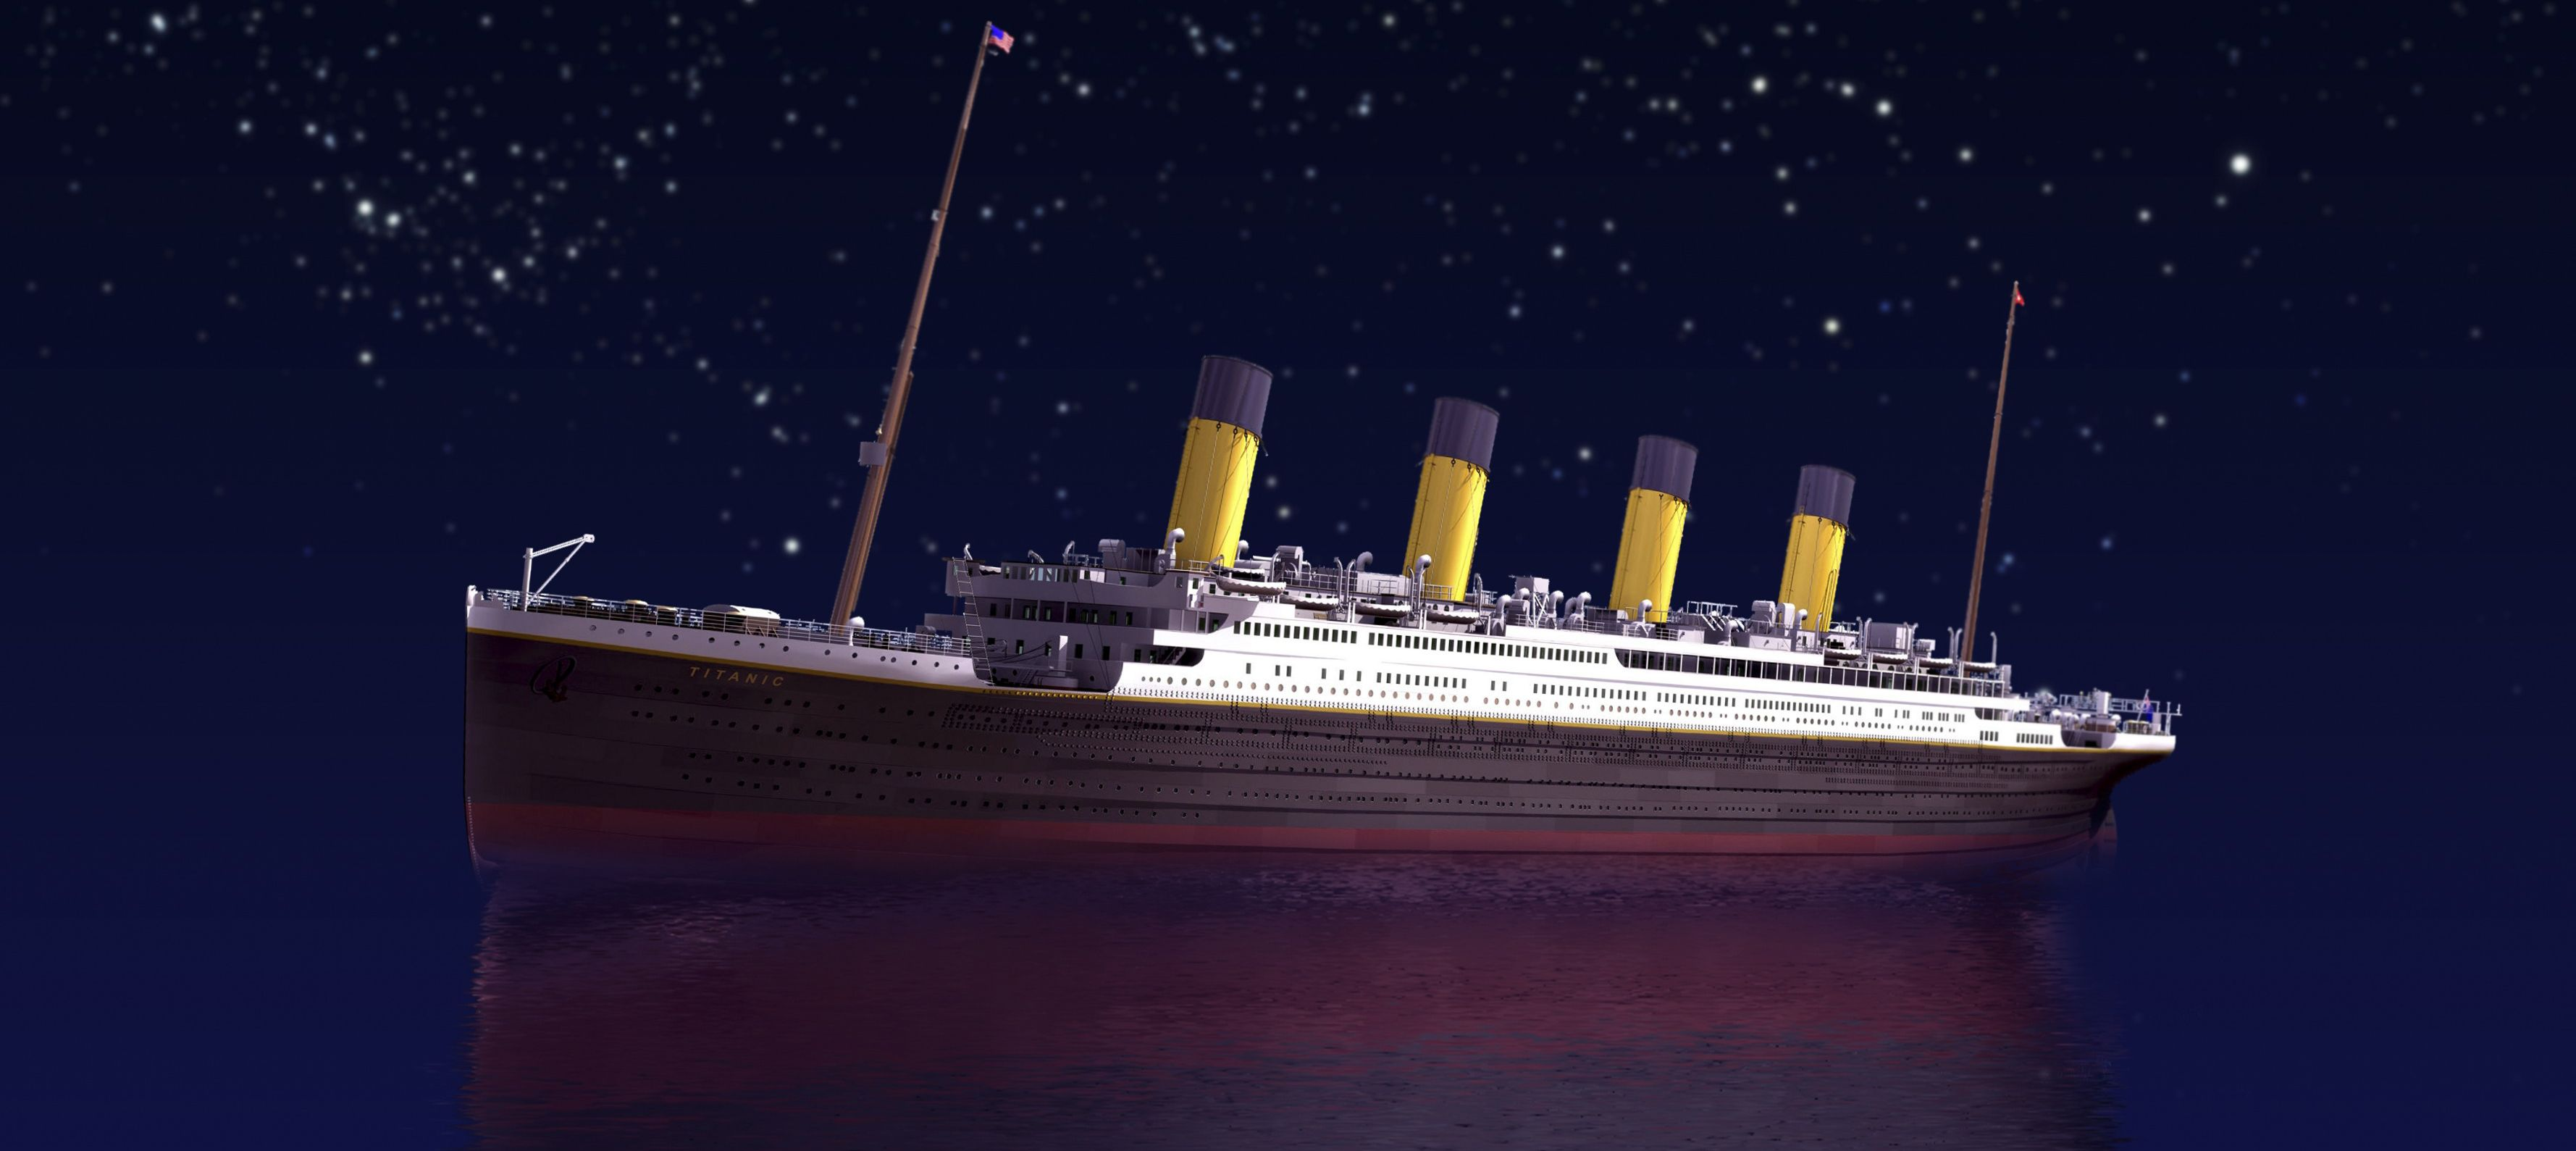 Twenty Titanic Facts - sailing at night